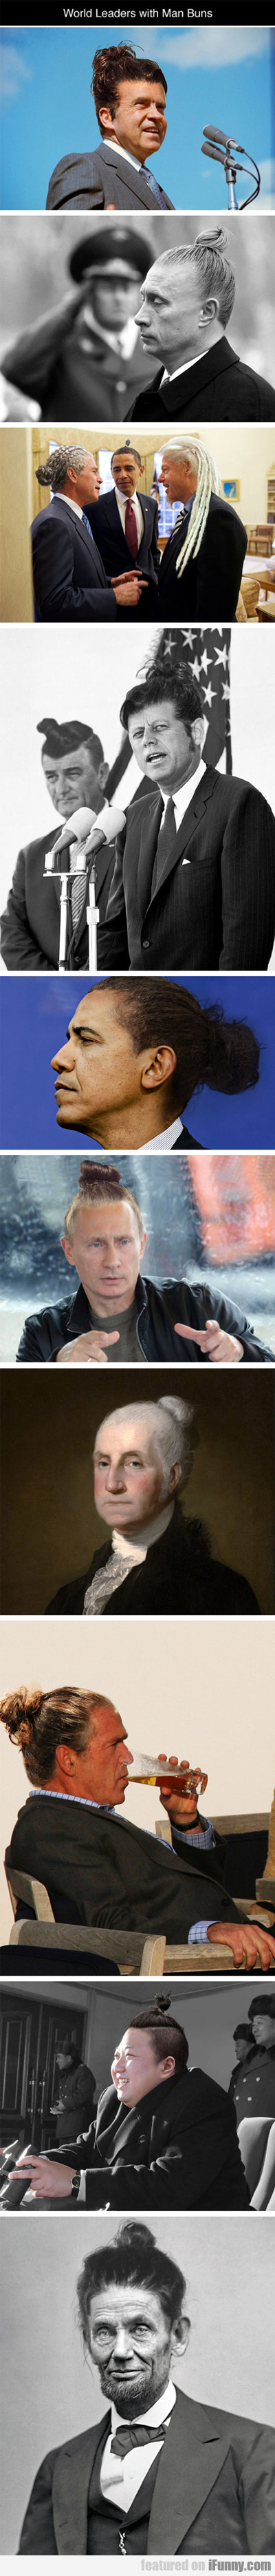 World Leaders With Man Buns...